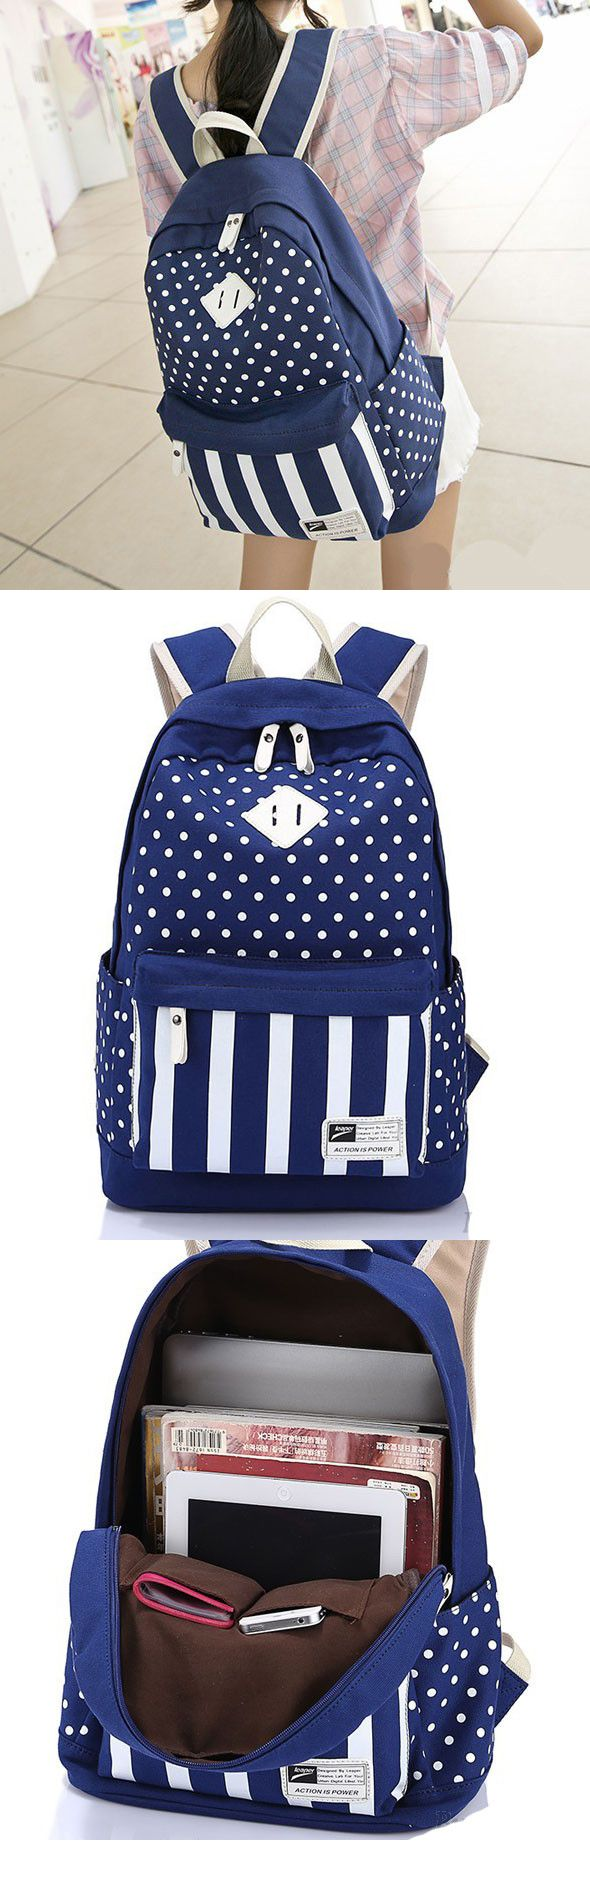 2017 Casual Polka Dot Stripe Canvas Backpack School Bag school bags for teens,school bags for teens backpacks,school bags for teens backpacks student,school bags for teens backpacks black,school bags for teens backpacks casual,school bags for teens backpacks vintage,school bags for teens handbags,school bags for teens handbags fashion,school bags for teens handbags canvases,school bags for college